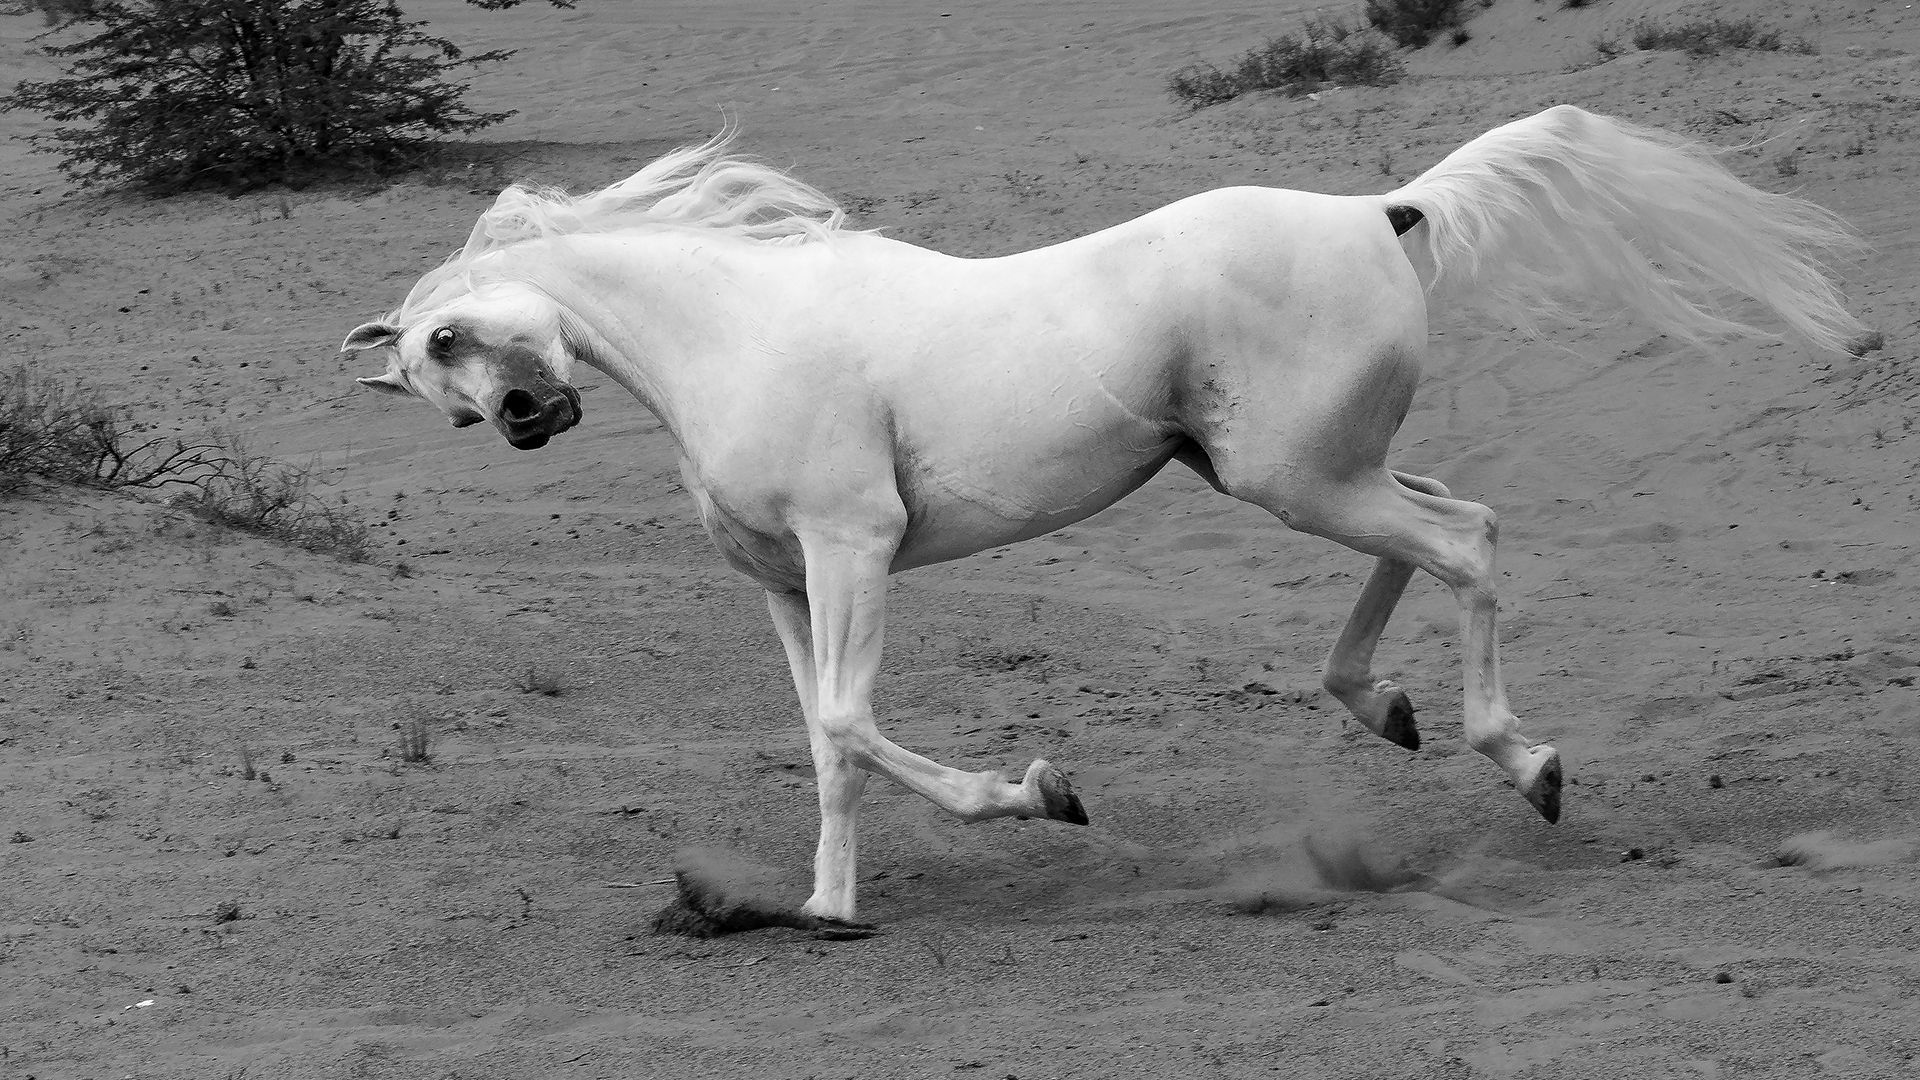 ARABIAN HORSE IN A DESERT 02